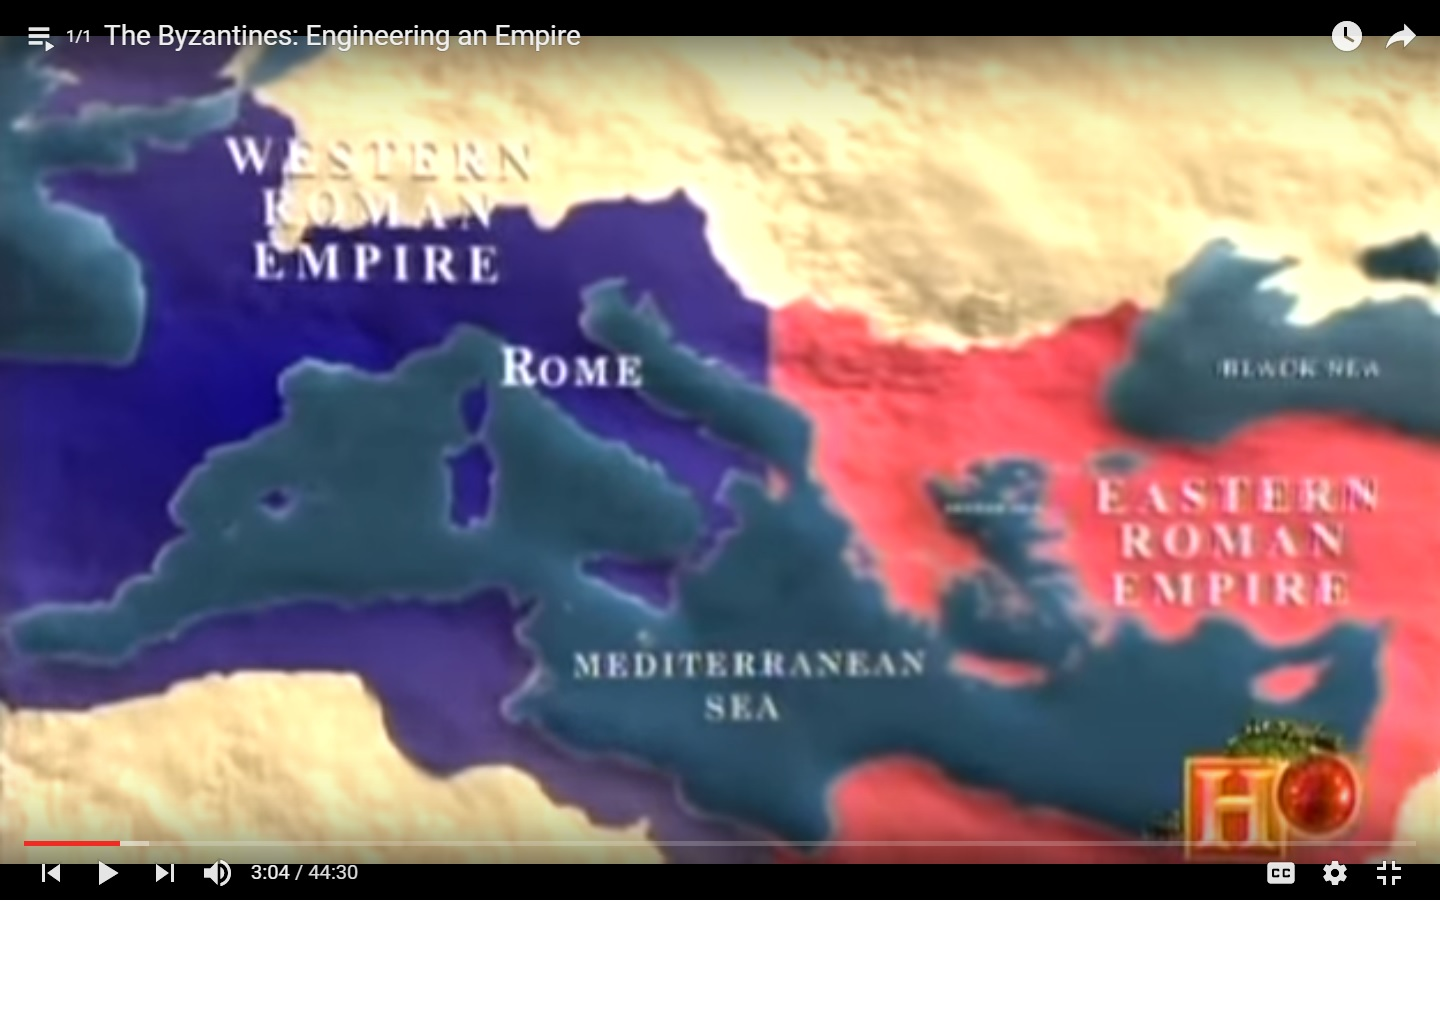 worksheet Engineering An Empire Worksheet stephanie smith tri valley middle school to accessthe byzantines engineering an empire extention video click on the map below access total war history theodosian walls vide